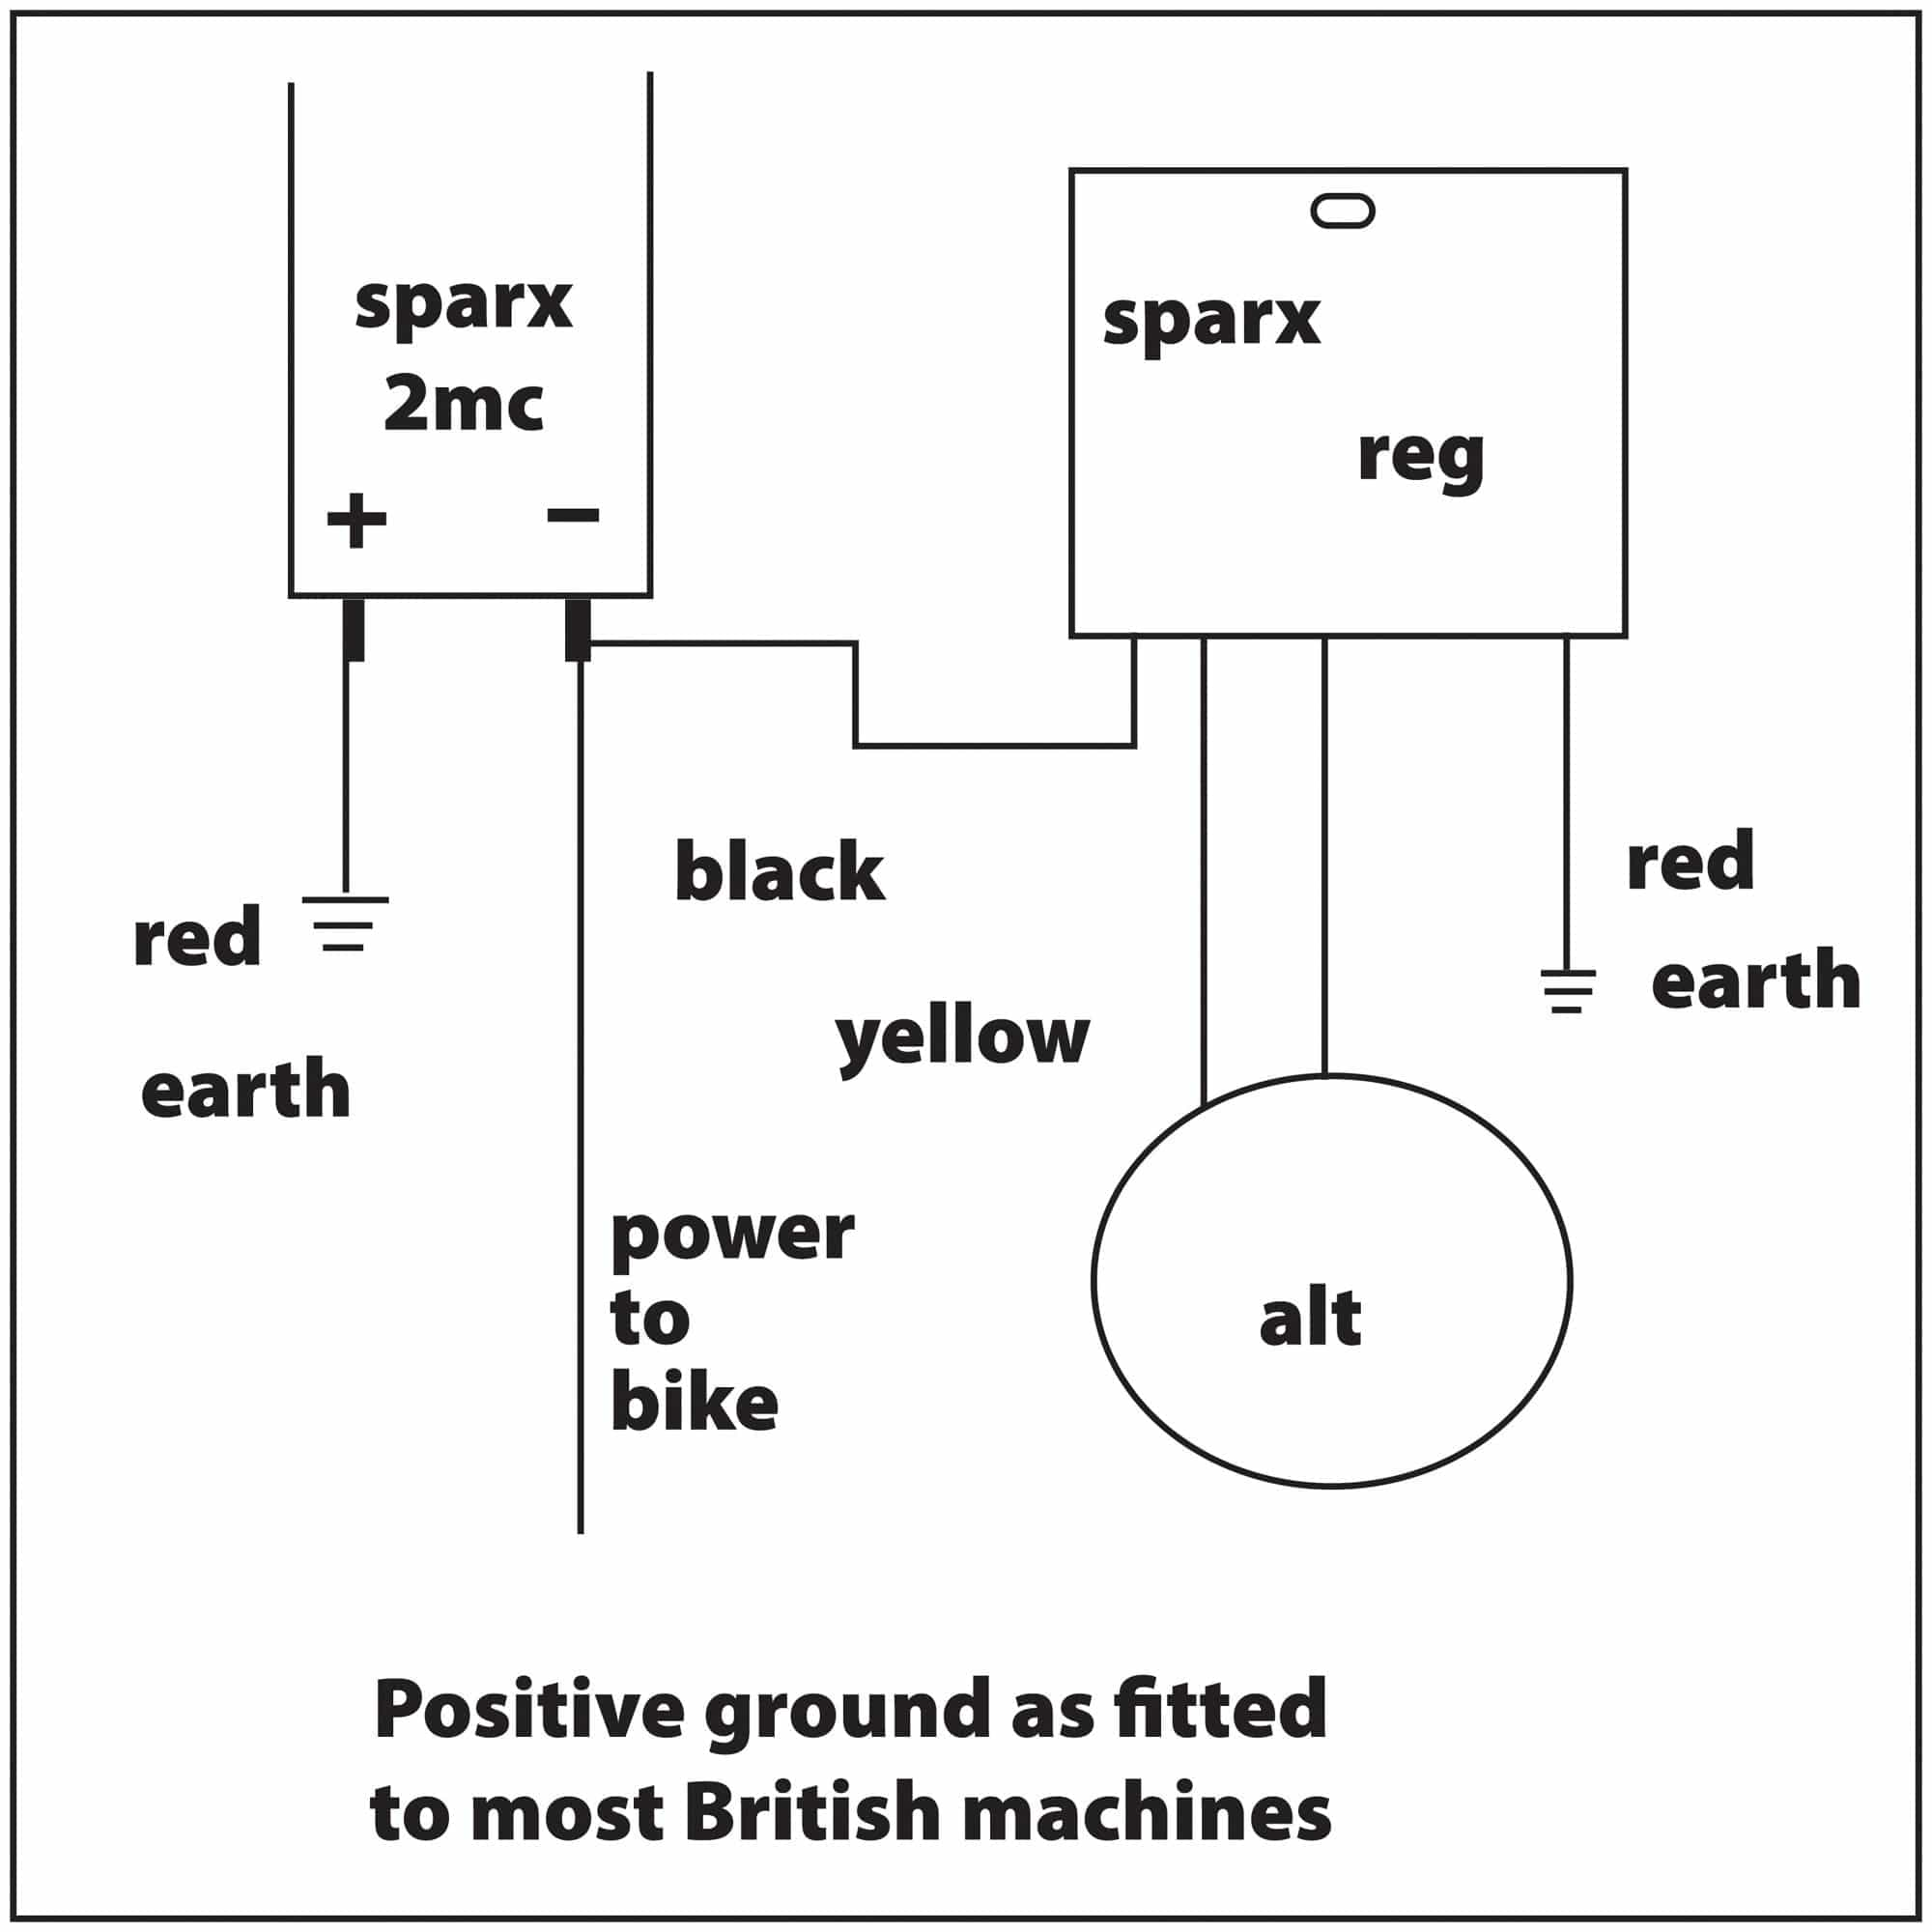 sparx wiring diagram for lights british standard capacitor battery eliminator replaces lucas 2mc  battery eliminator replaces lucas 2mc